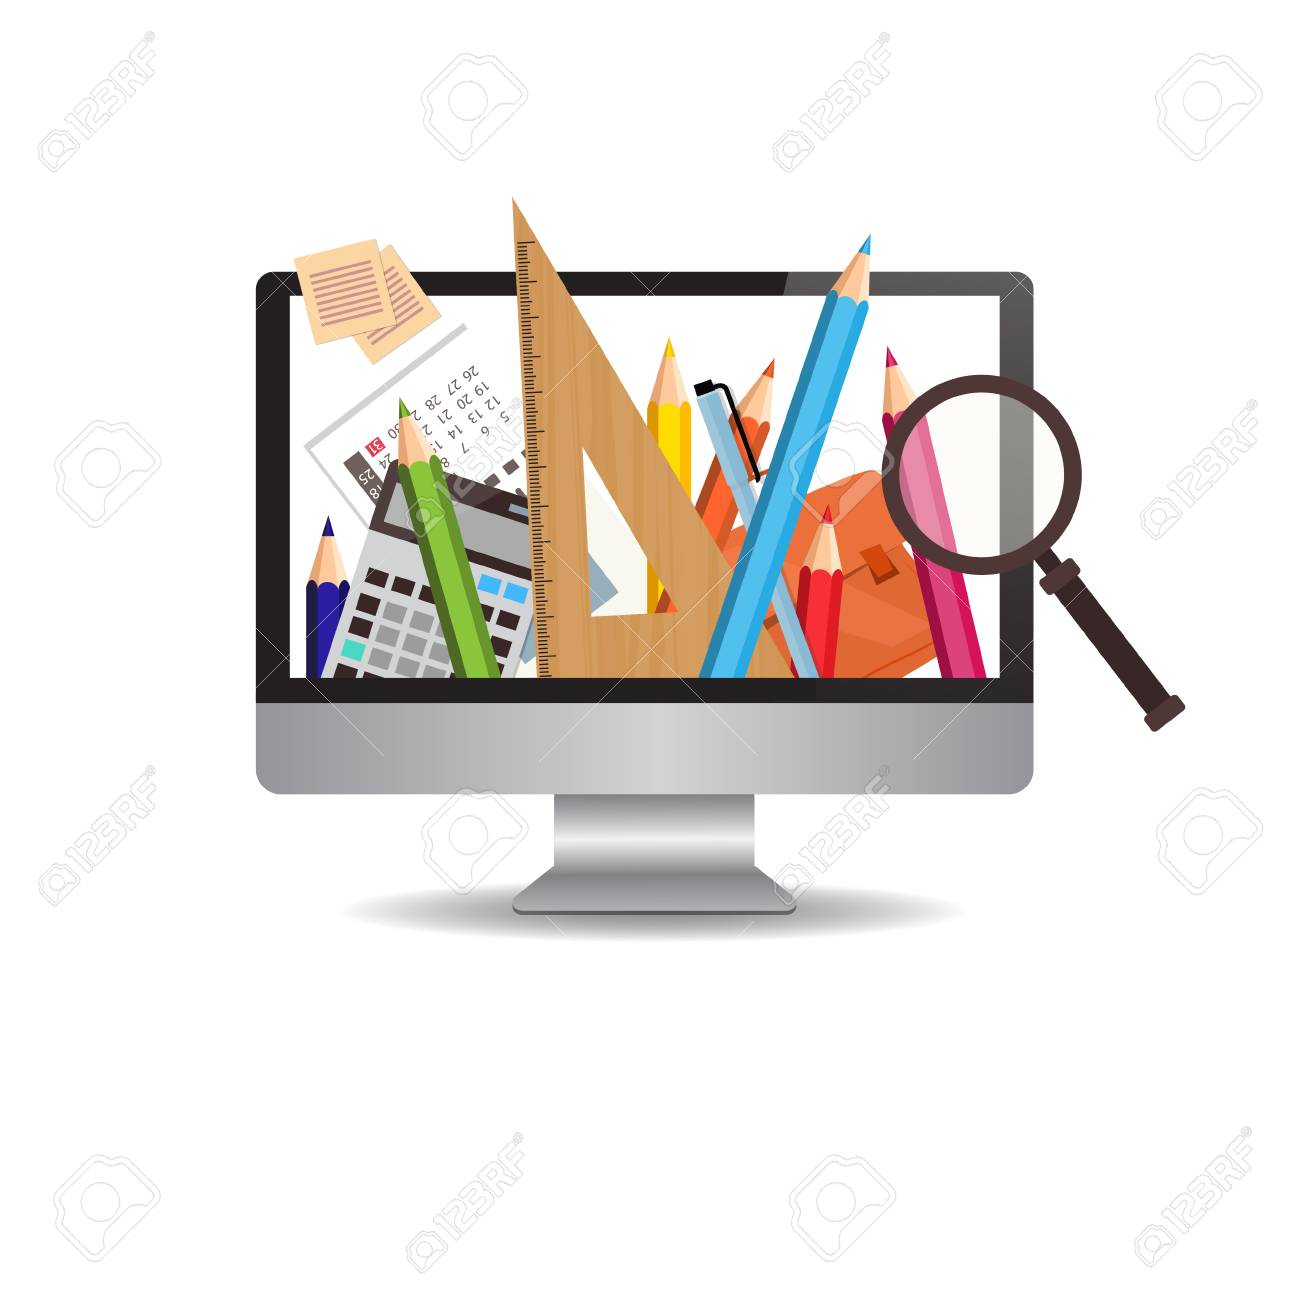 Computer Monitor With Image Of School Writing Supplies On White Royalty Free Cliparts Vectors And Stock Illustration Image 82661656